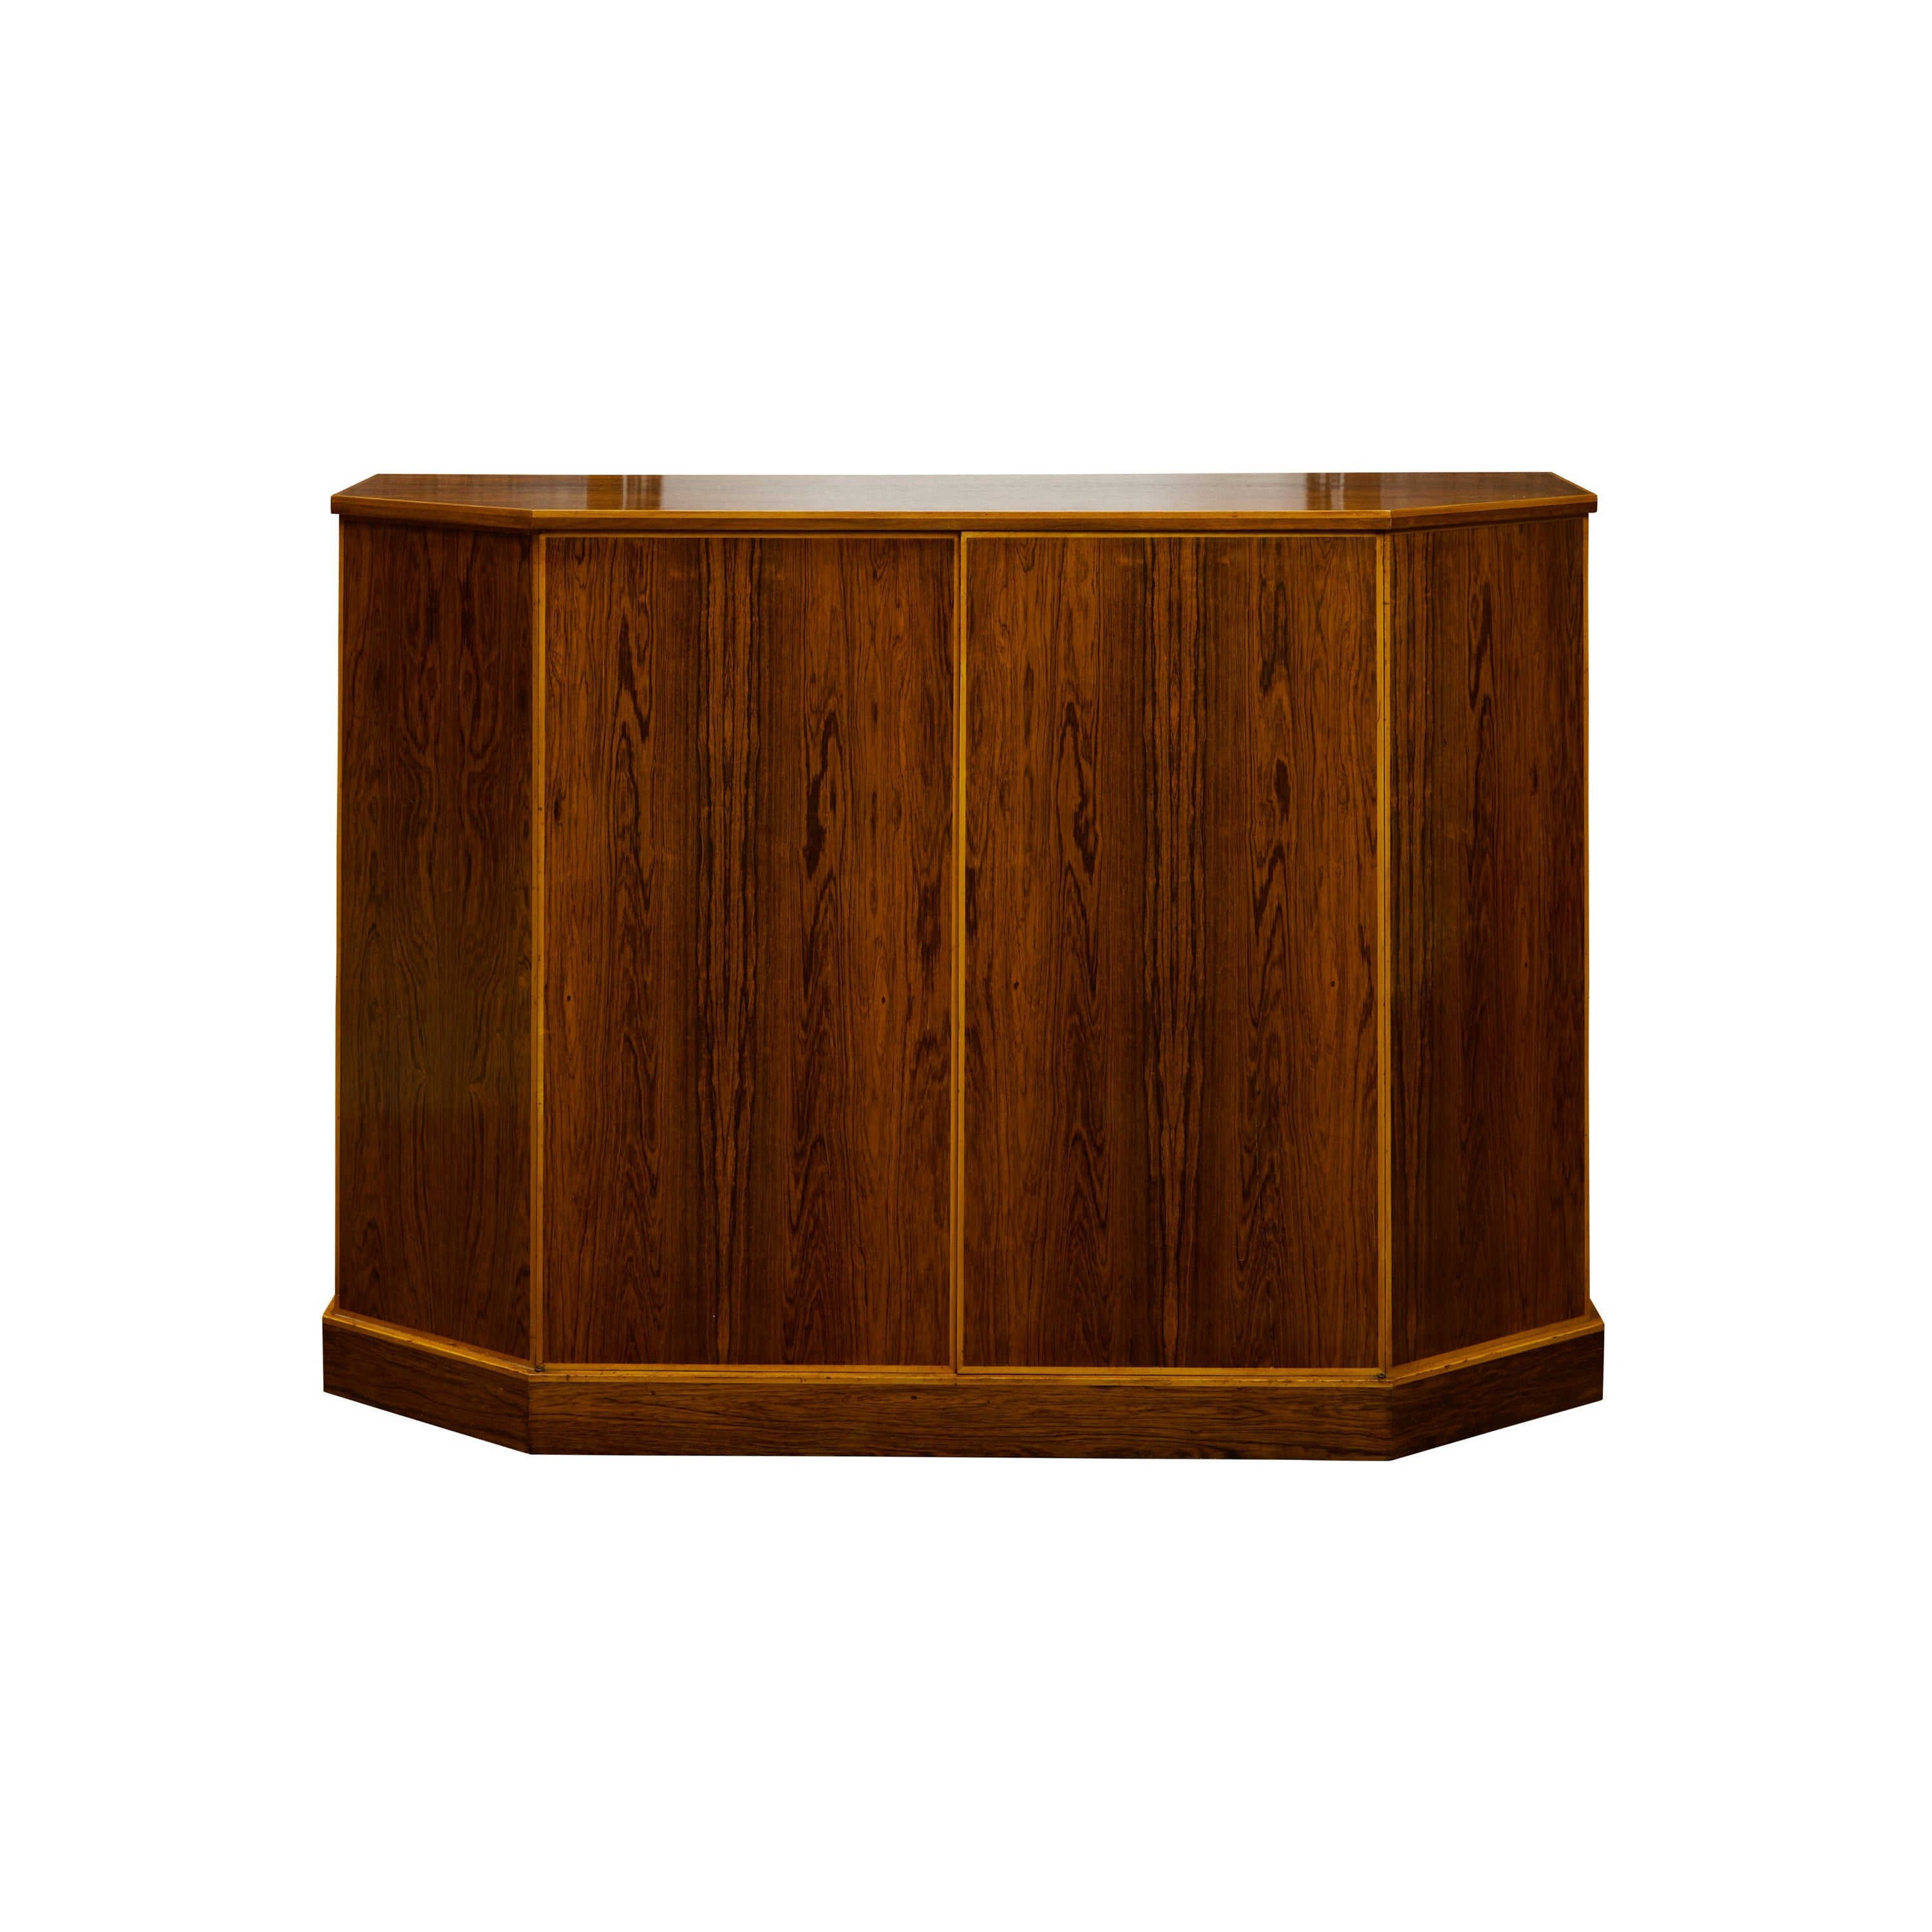 Vintage English Midcentury Rosewood Credenza with Canted Side Panels